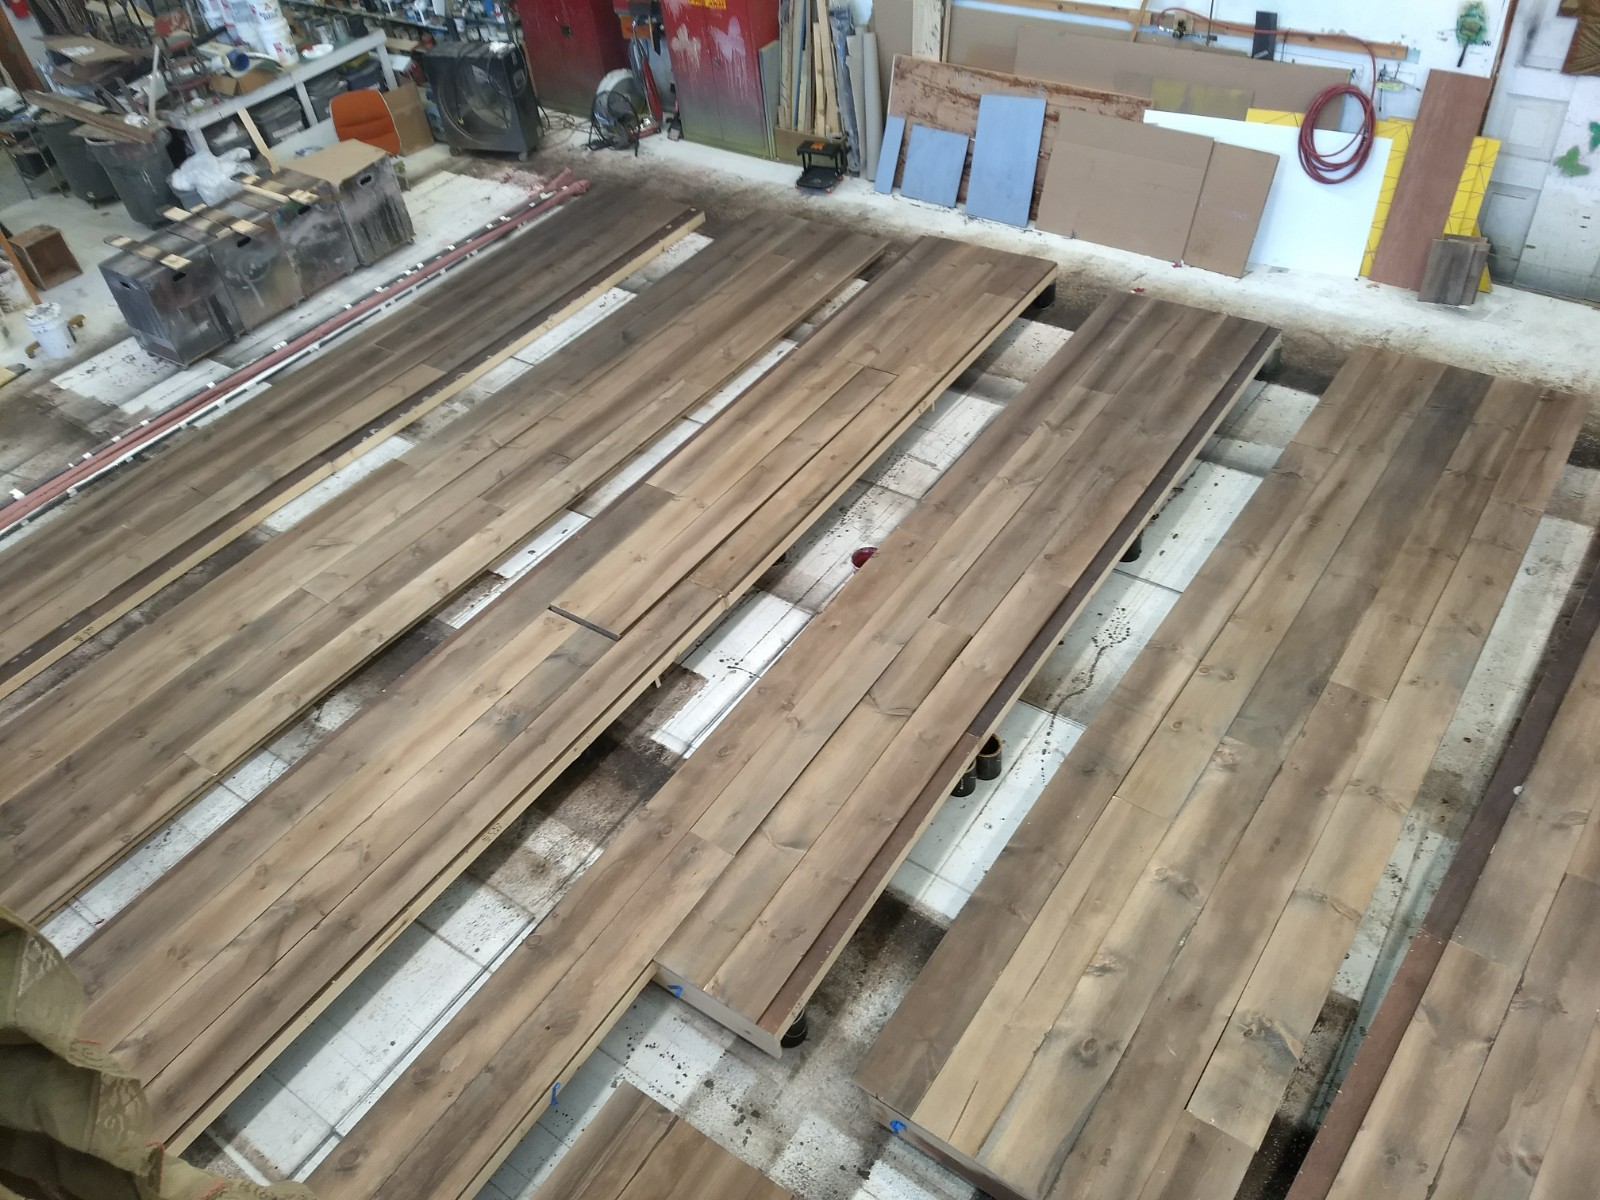 430 wooden planks were painted and sealed to cover the floor and walls for the set.